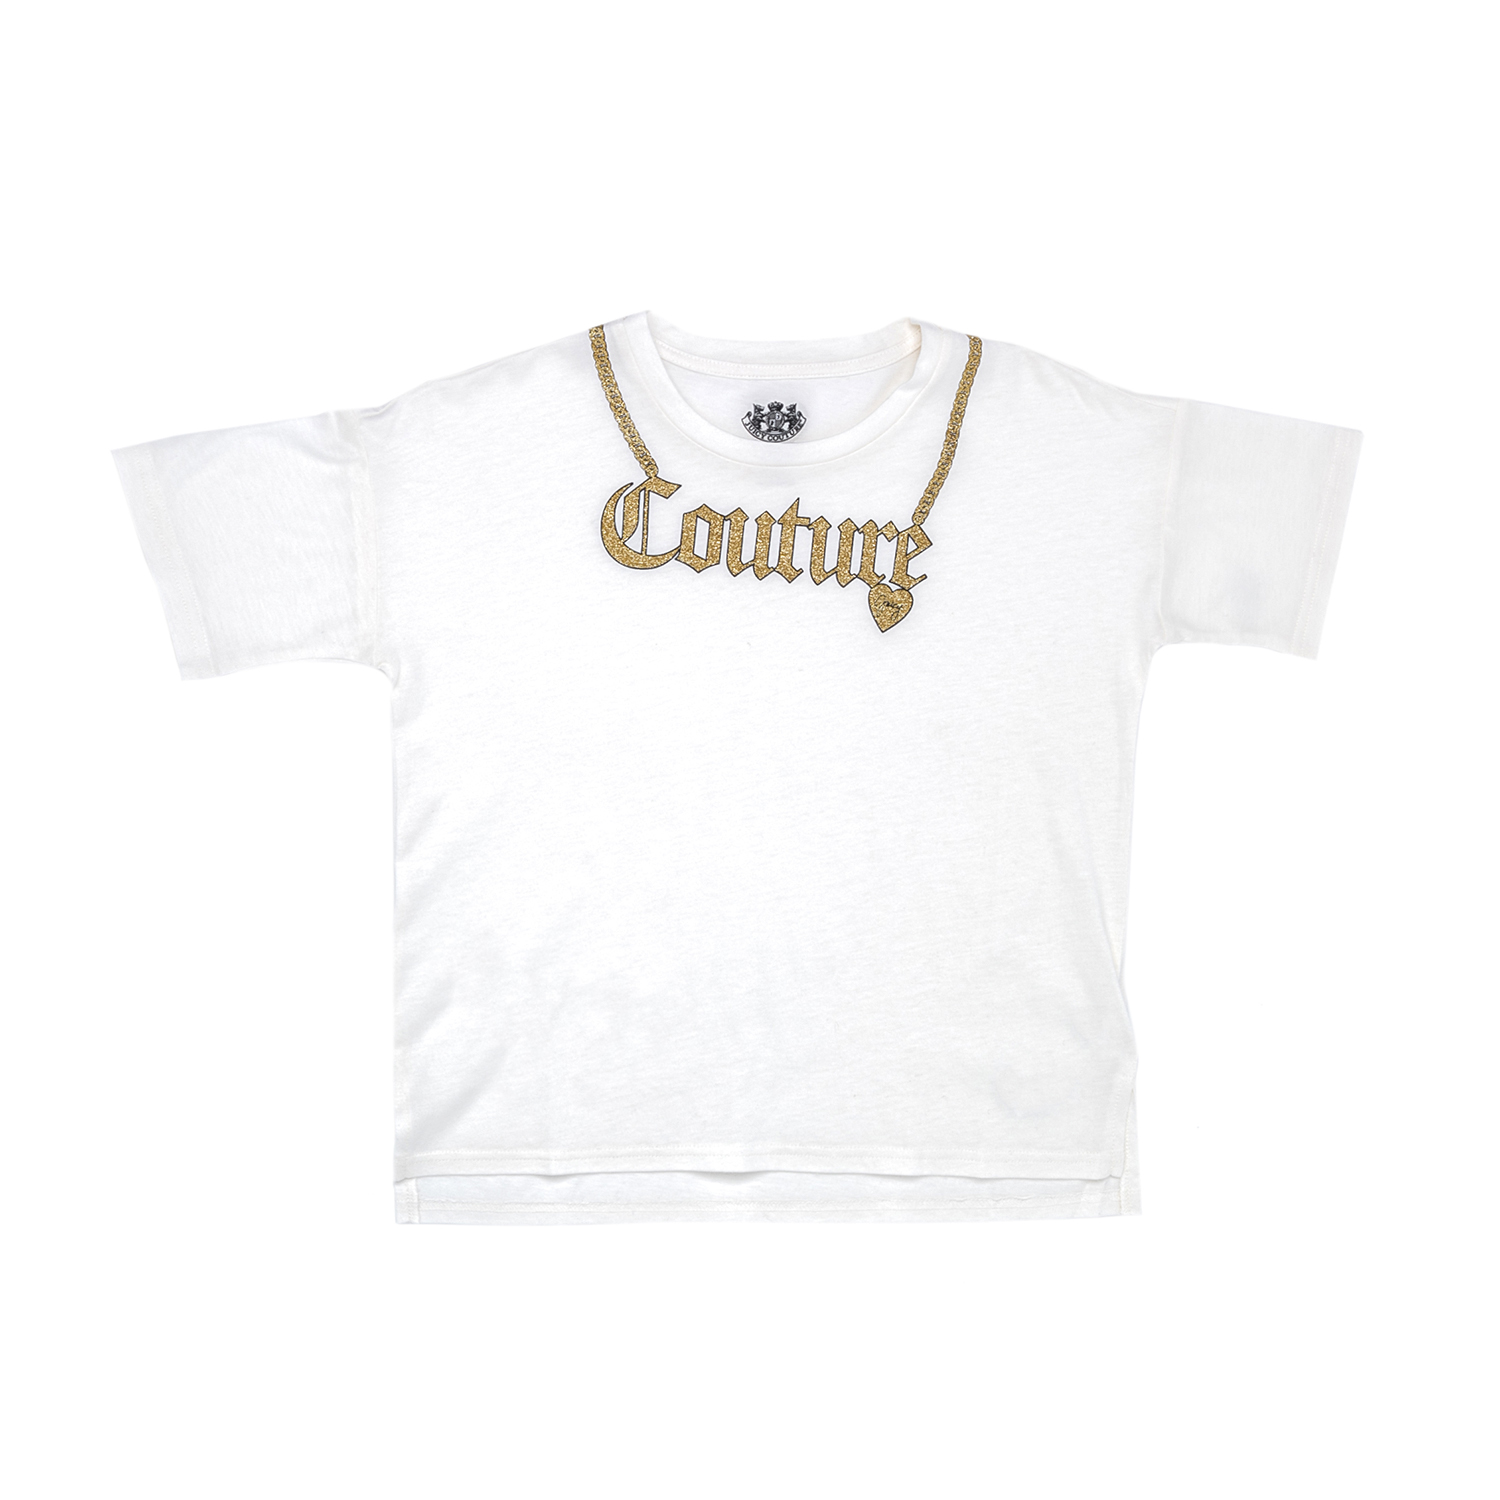 92d90fa3897a JUICY COUTURE KIDS - Παιδική μπλούζα JUICY COUTURE KIDS άσπρη